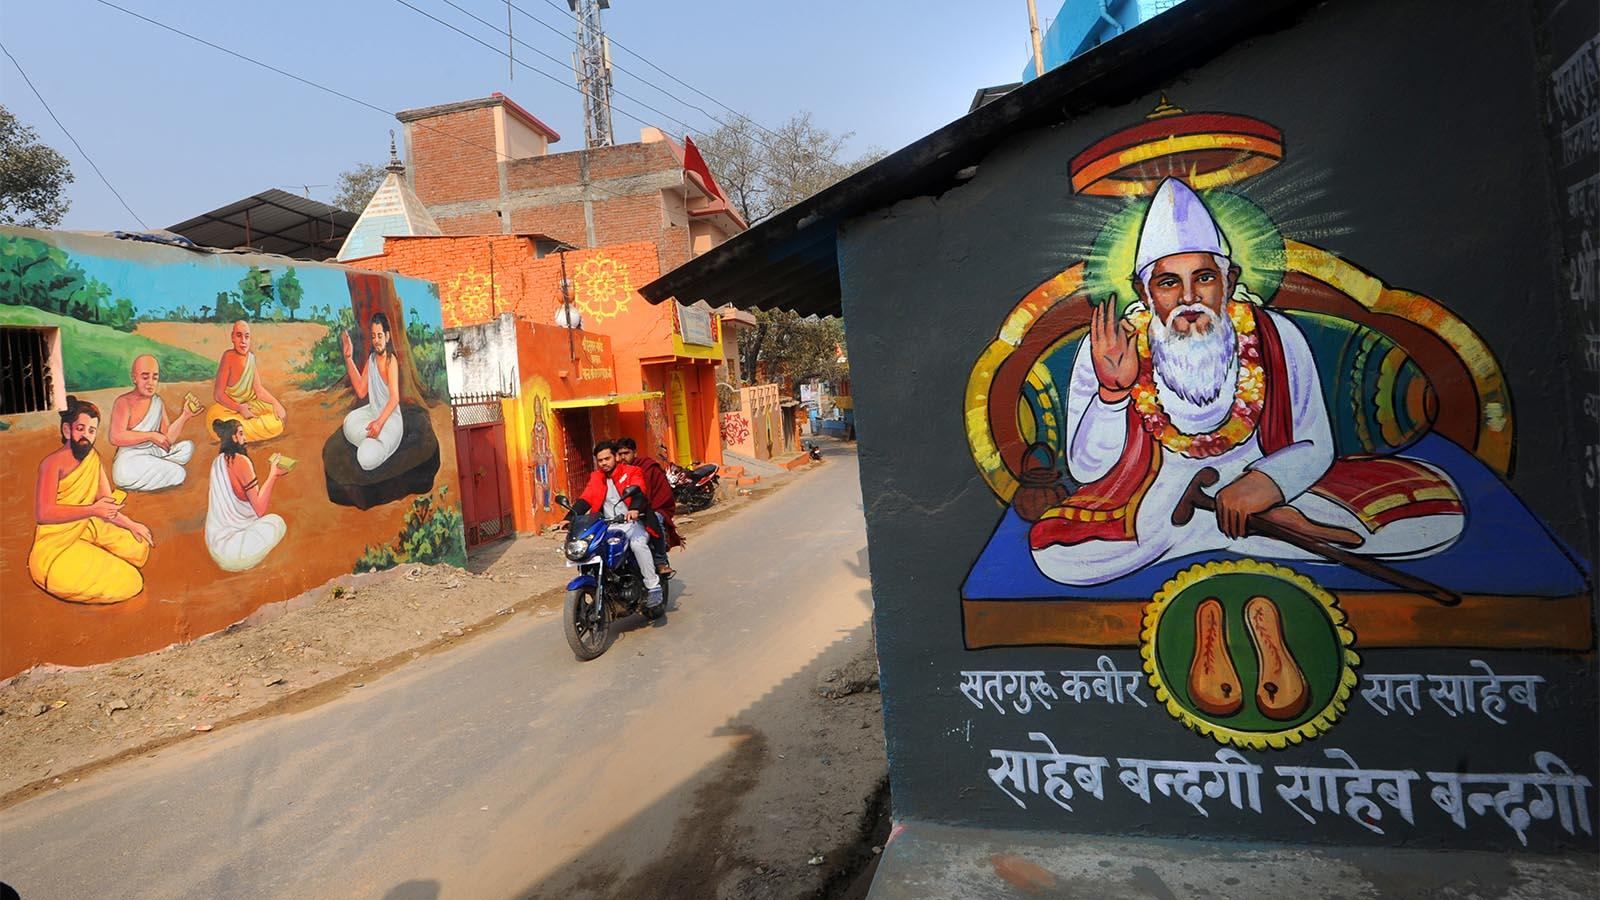 Most murals revolve around mythological themes